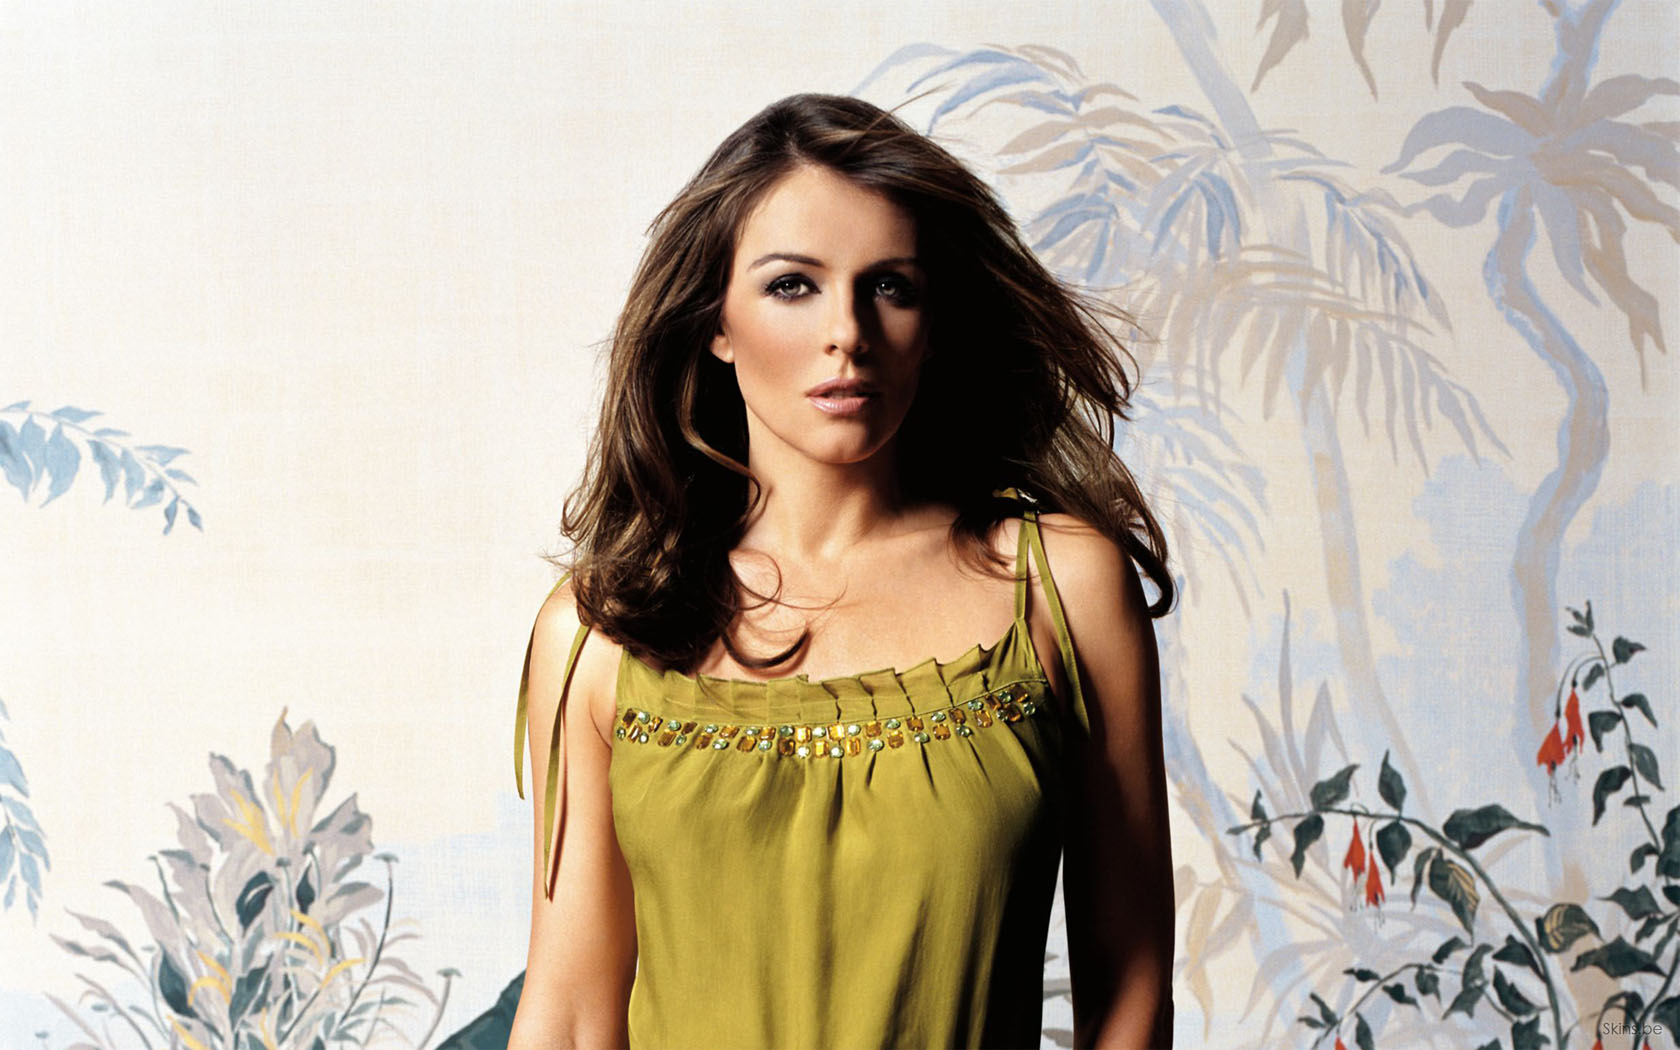 Elizabeth Hurley desktop wallpaper download in 1680x1050